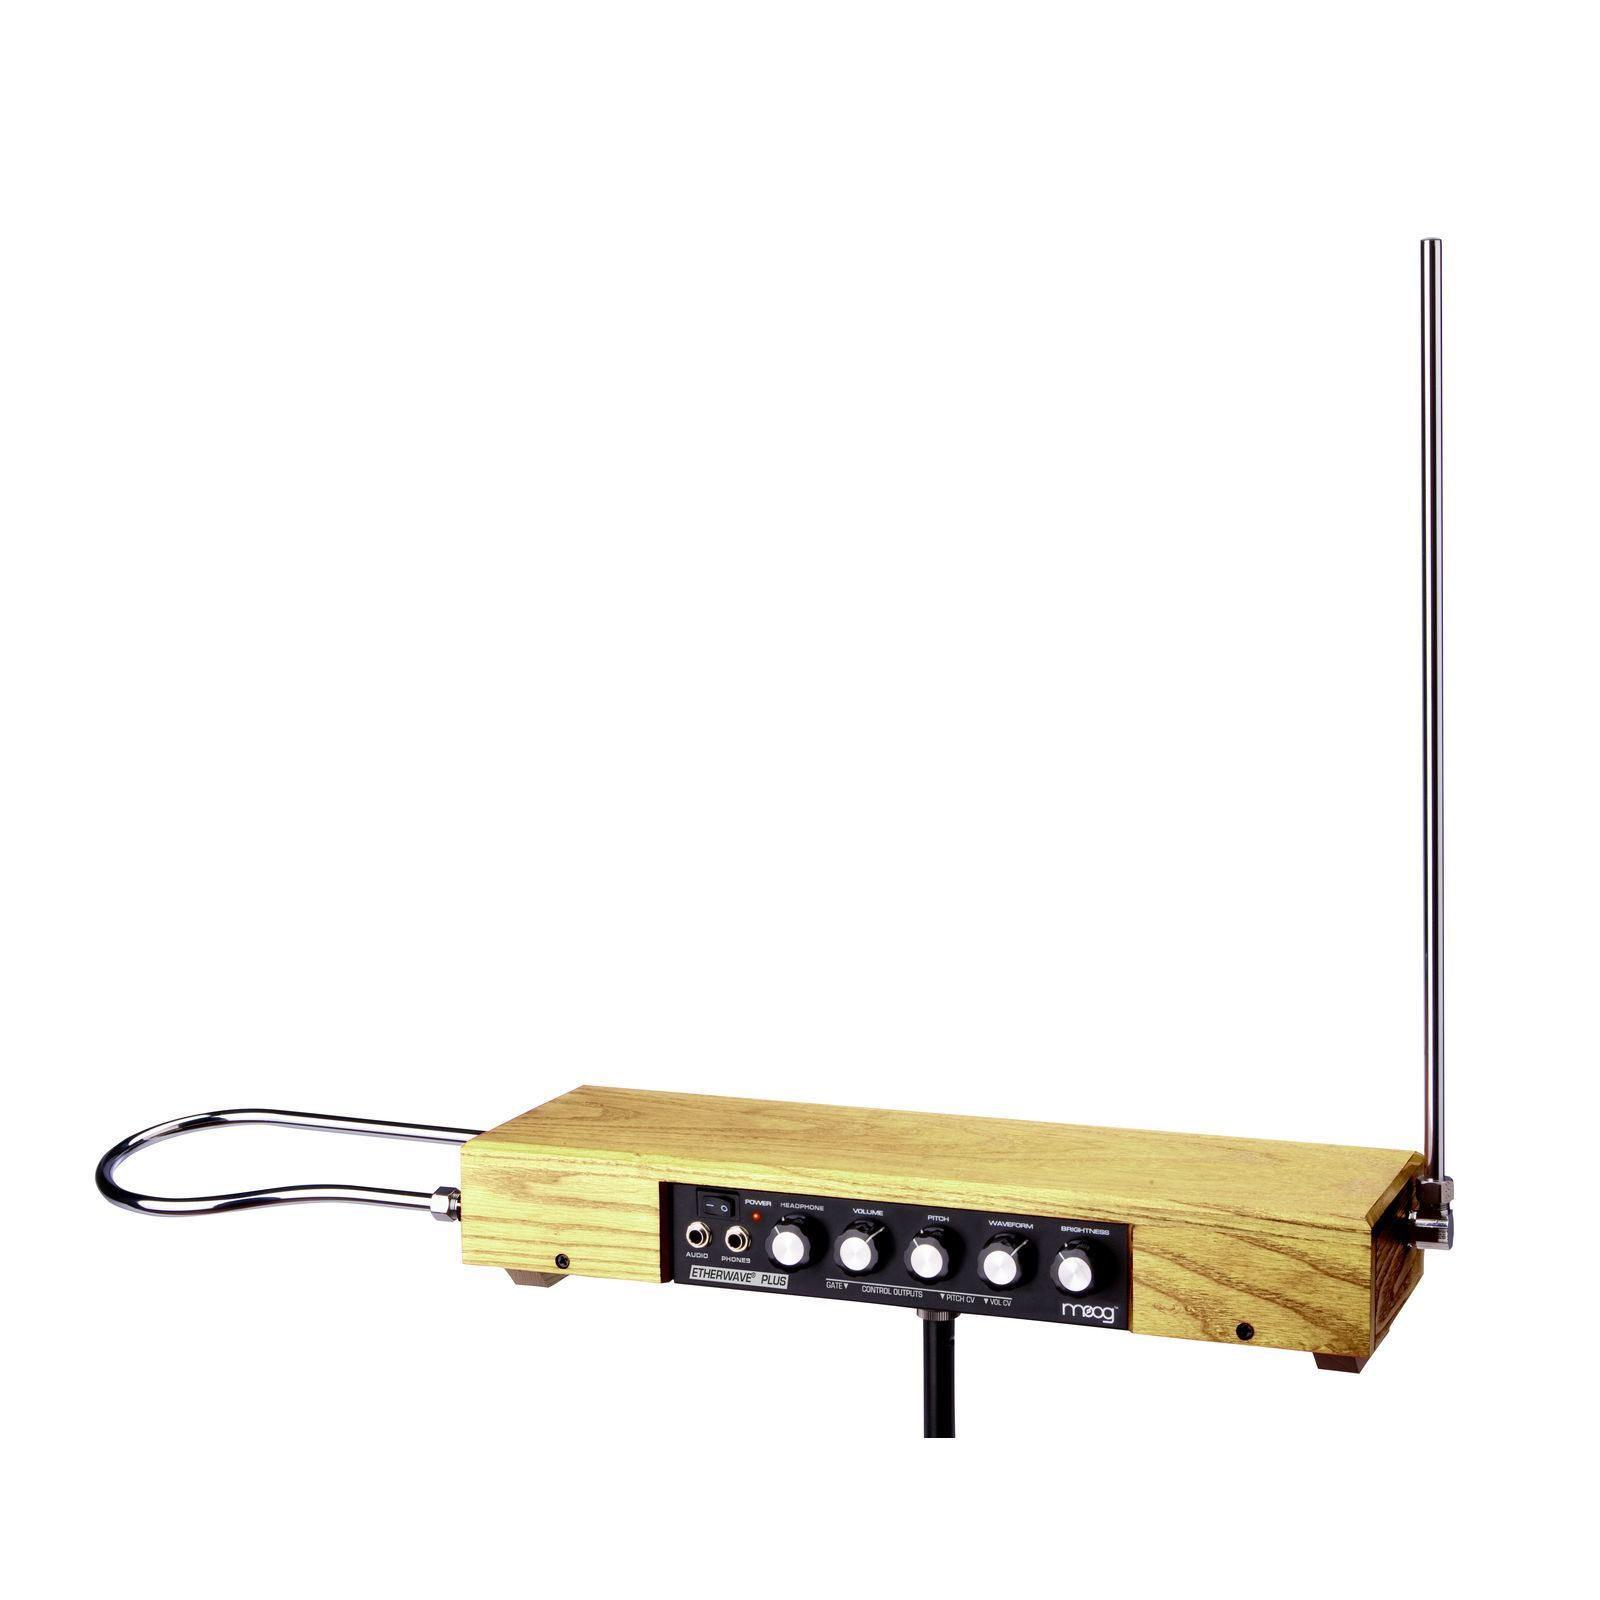 Moog Music Inc Etherwave Theremin Plus Fertiggerät Esche Produktbild